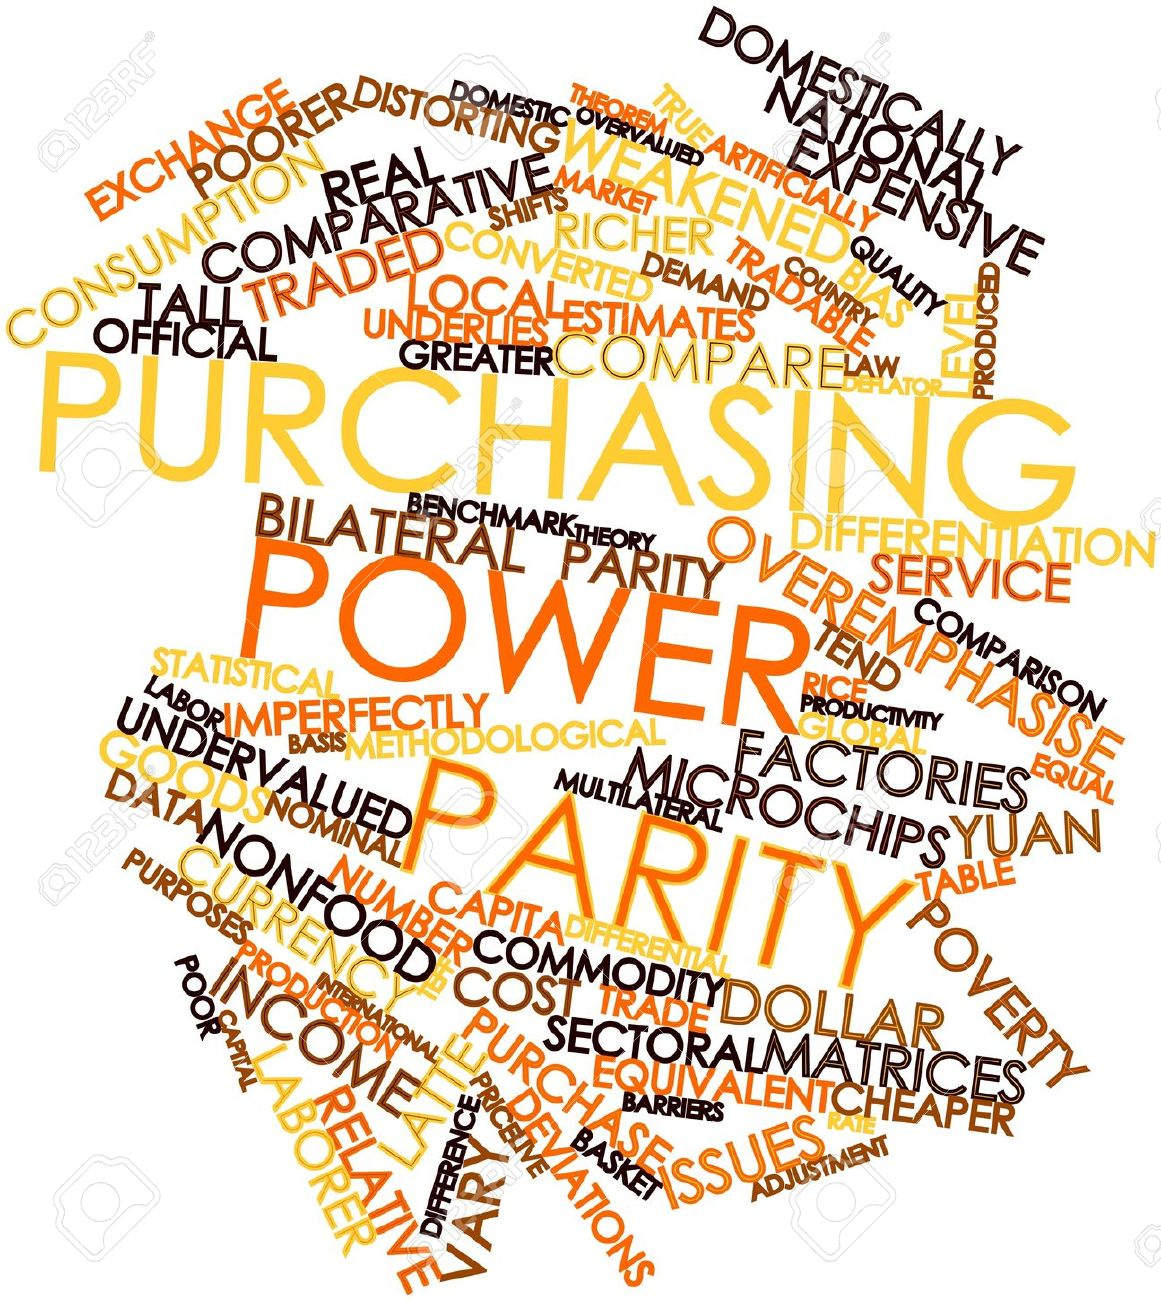 The Social Construct of Purchasing Power Parity.